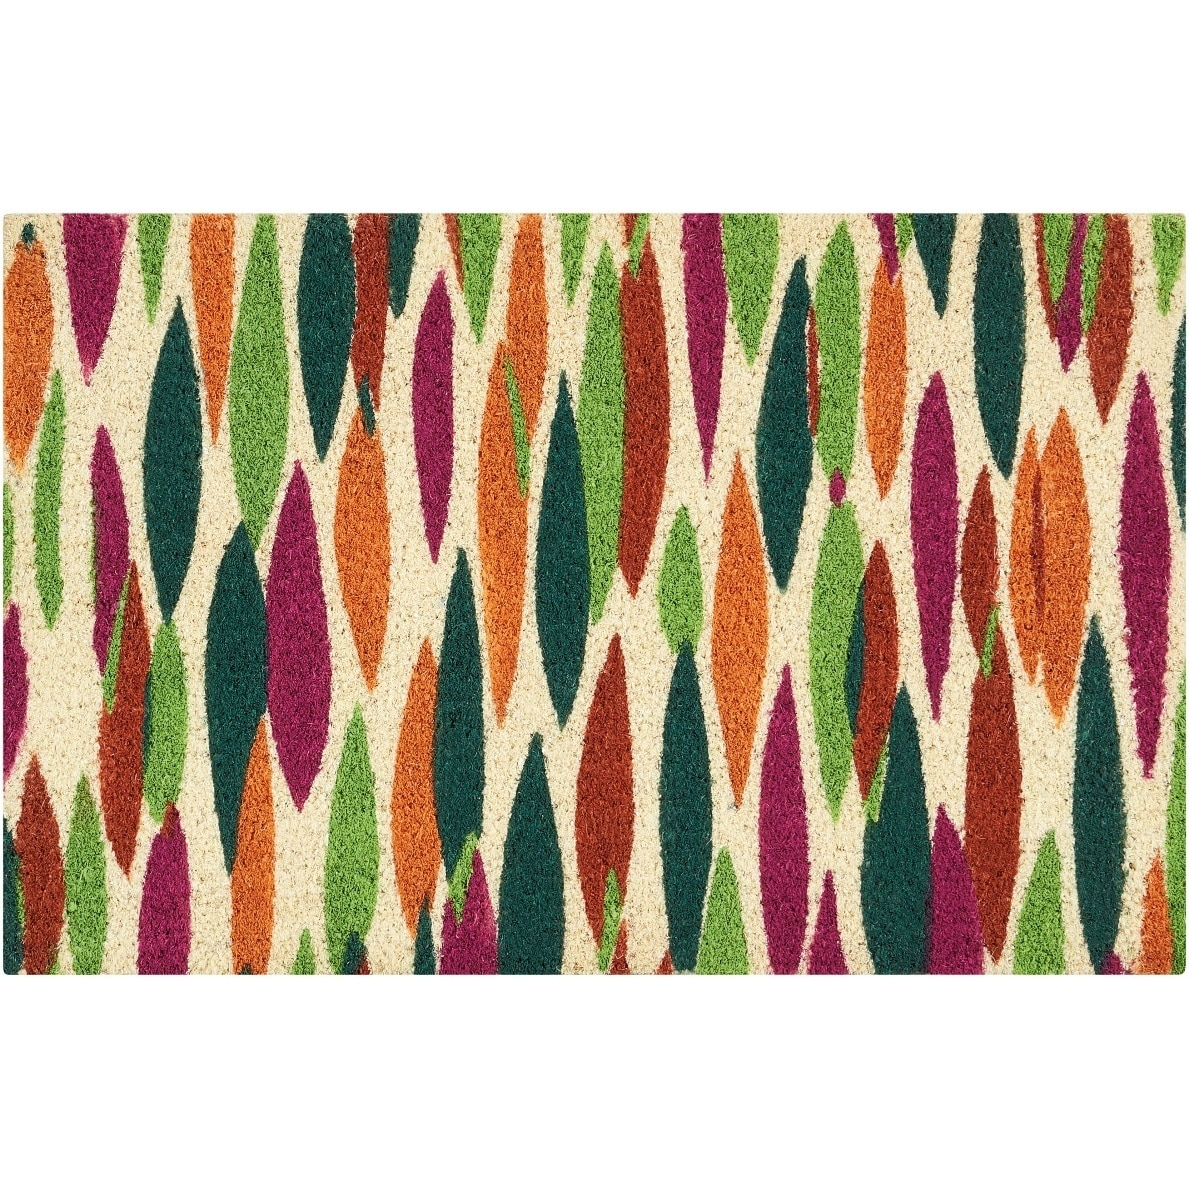 Waverly Greetings Bits n Pieces Clay Doormat by Nourison (16 x 24) - 16 x 24 (Clay, 16 x 24)